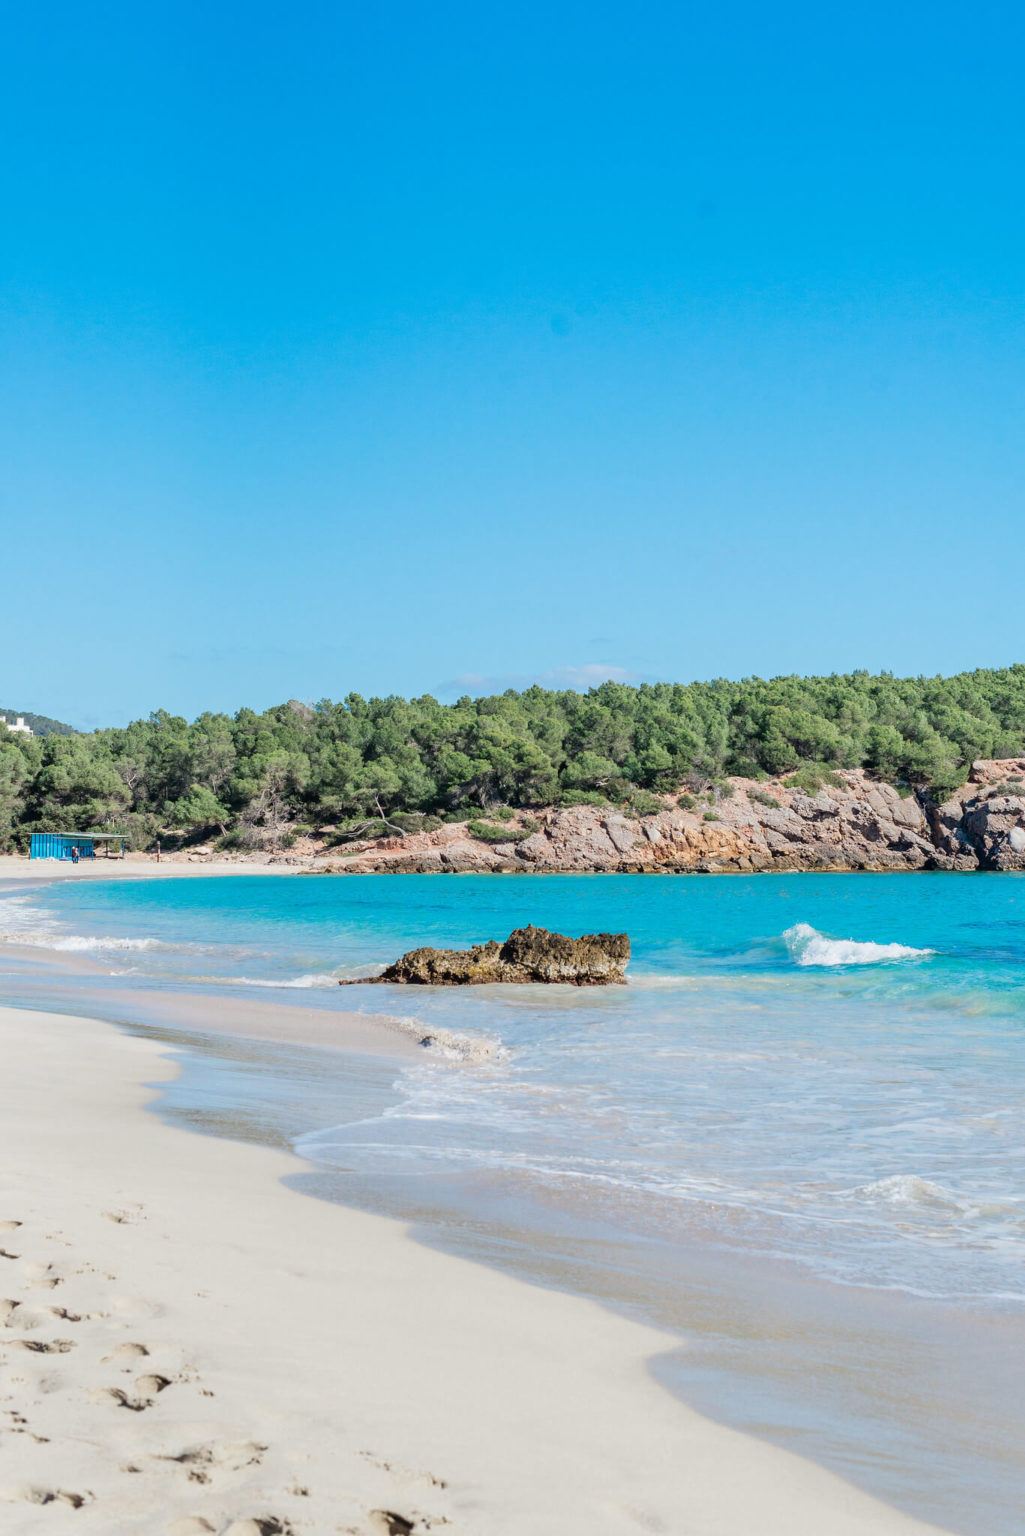 https://www.white-ibiza.com/wp-content/uploads/2020/03/ibiza-beaches-cala-nova-06-1025x1536.jpg